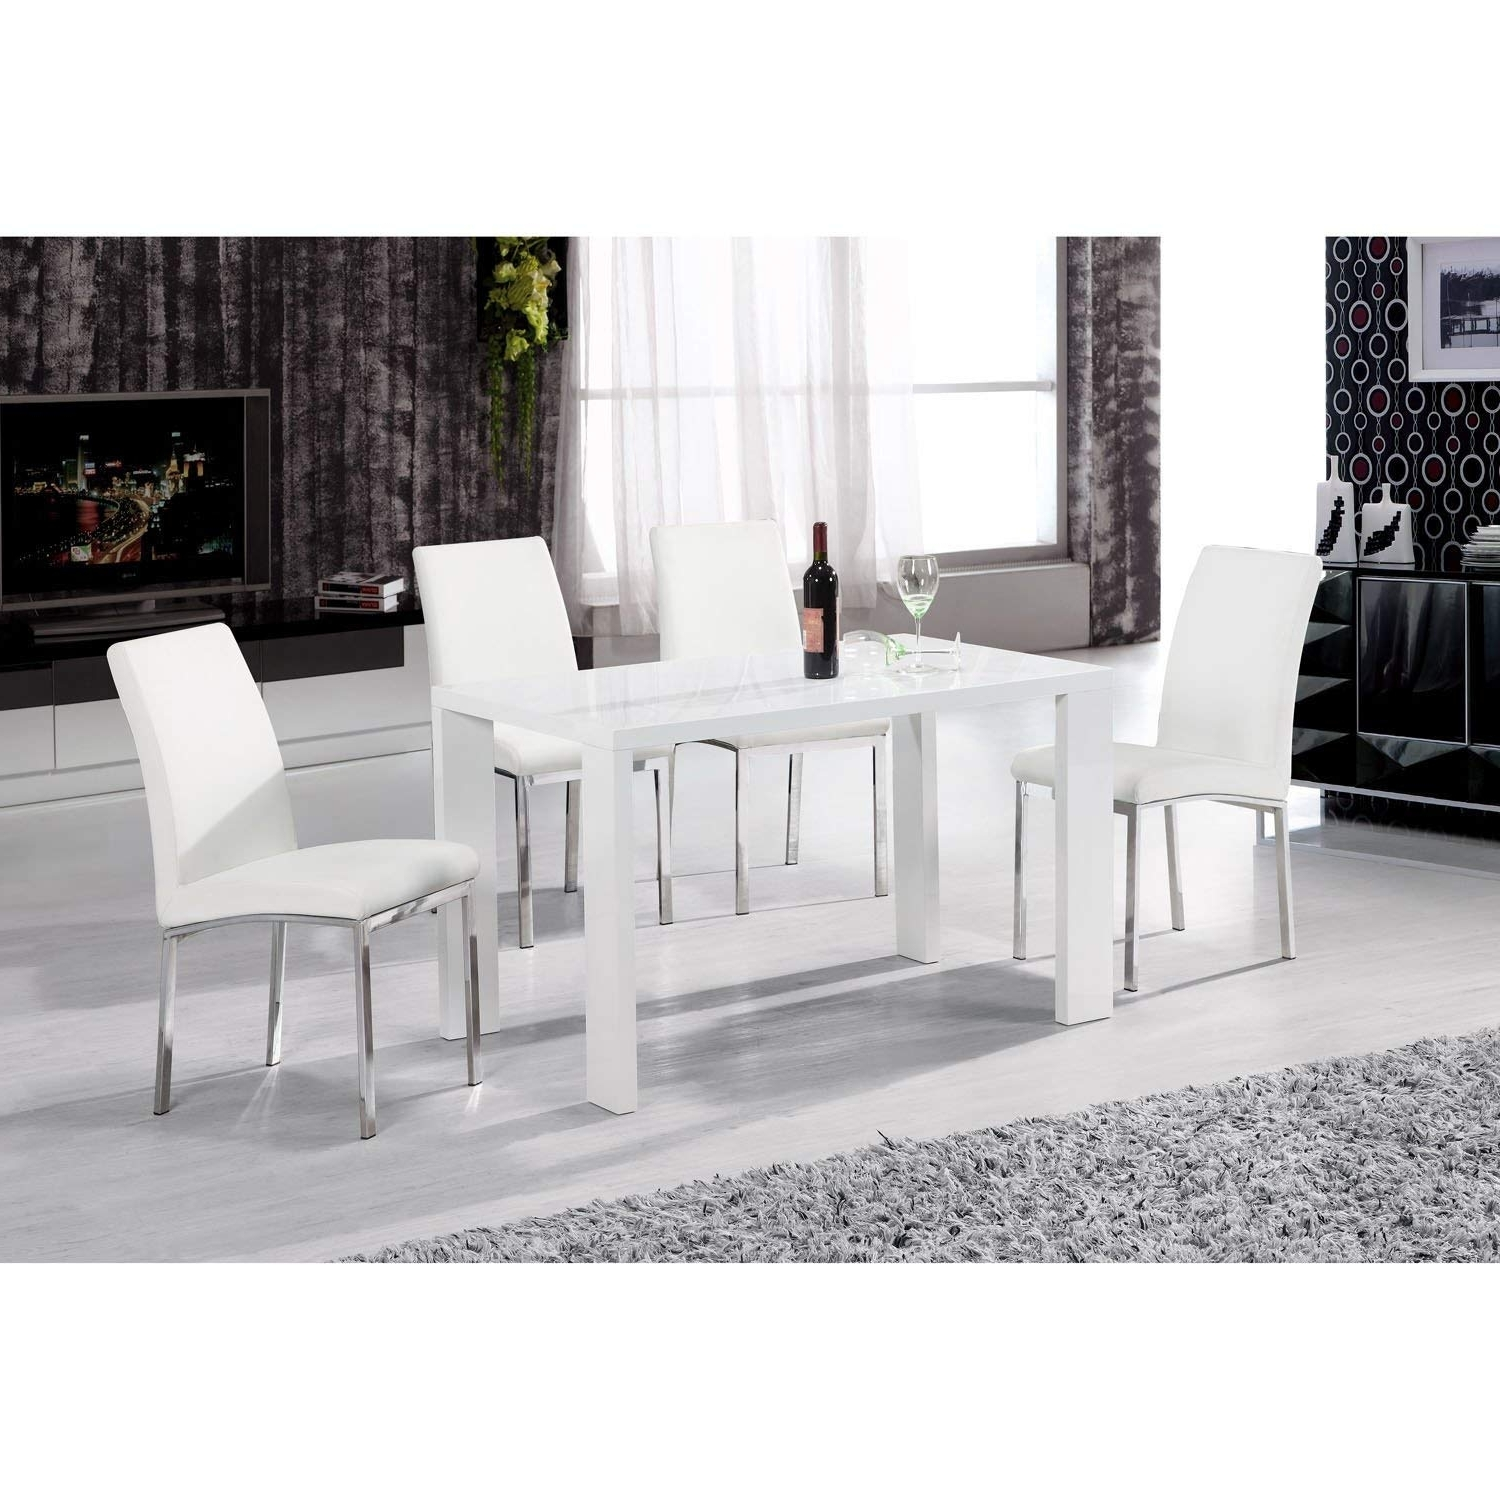 Most Recently Released Heartlands Peru White High Gloss 130Cm Dining Table In Wood Regarding Gloss White Dining Tables And Chairs (View 20 of 25)